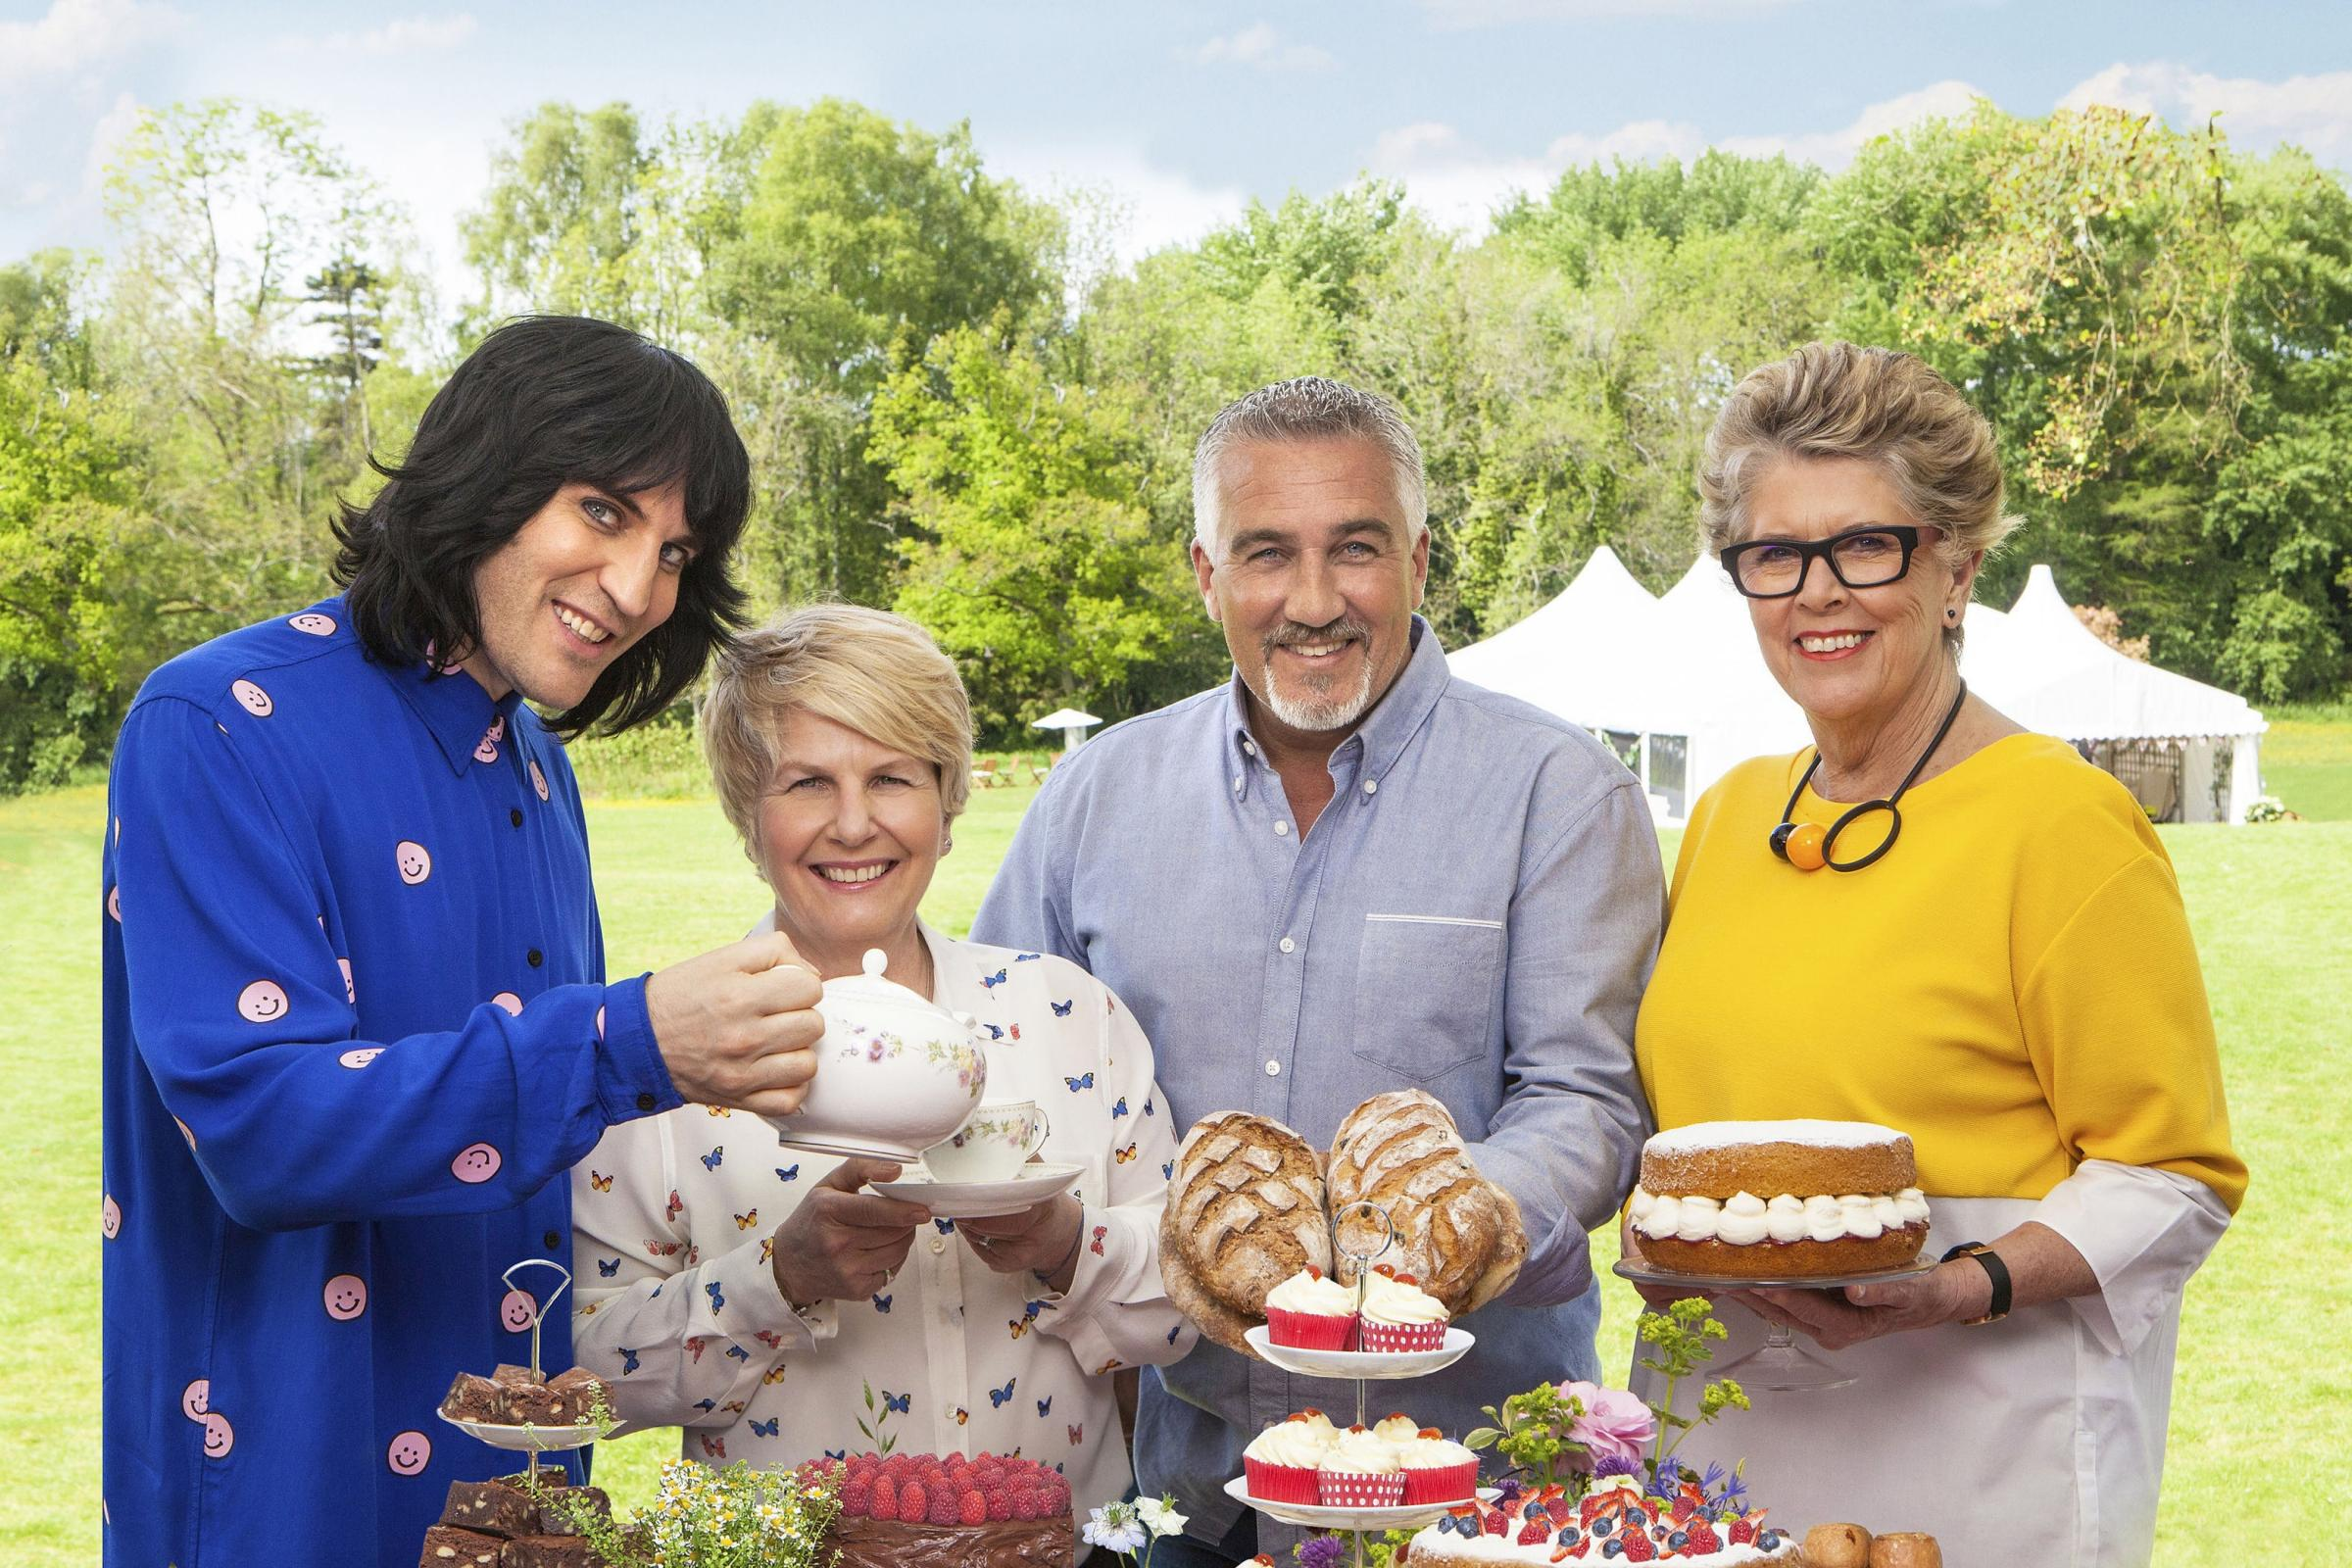 The judges and presenters of The Great British Bake Off